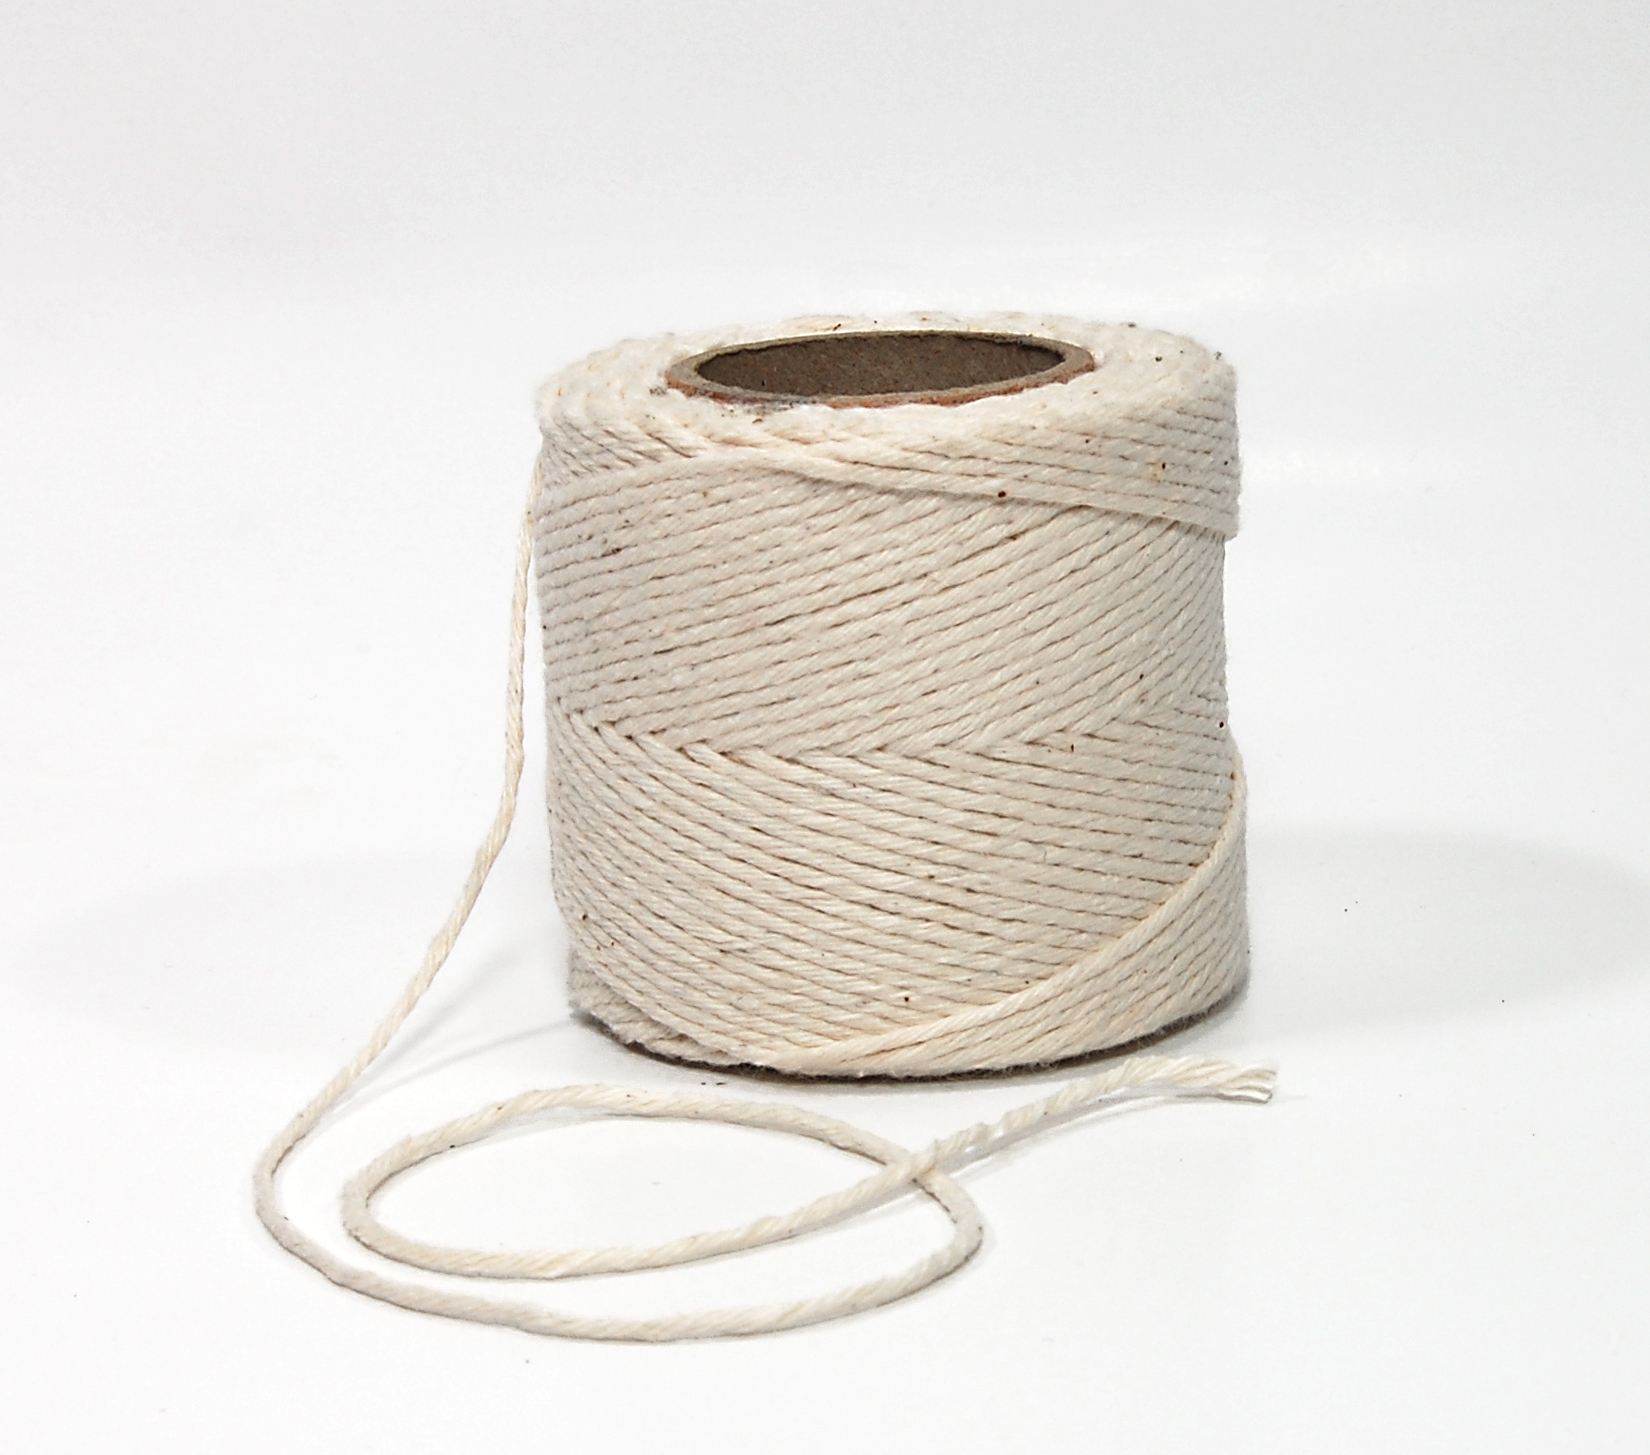 promo code 3cc15 b6979 File:Spool of string.jpg - Wikipedia